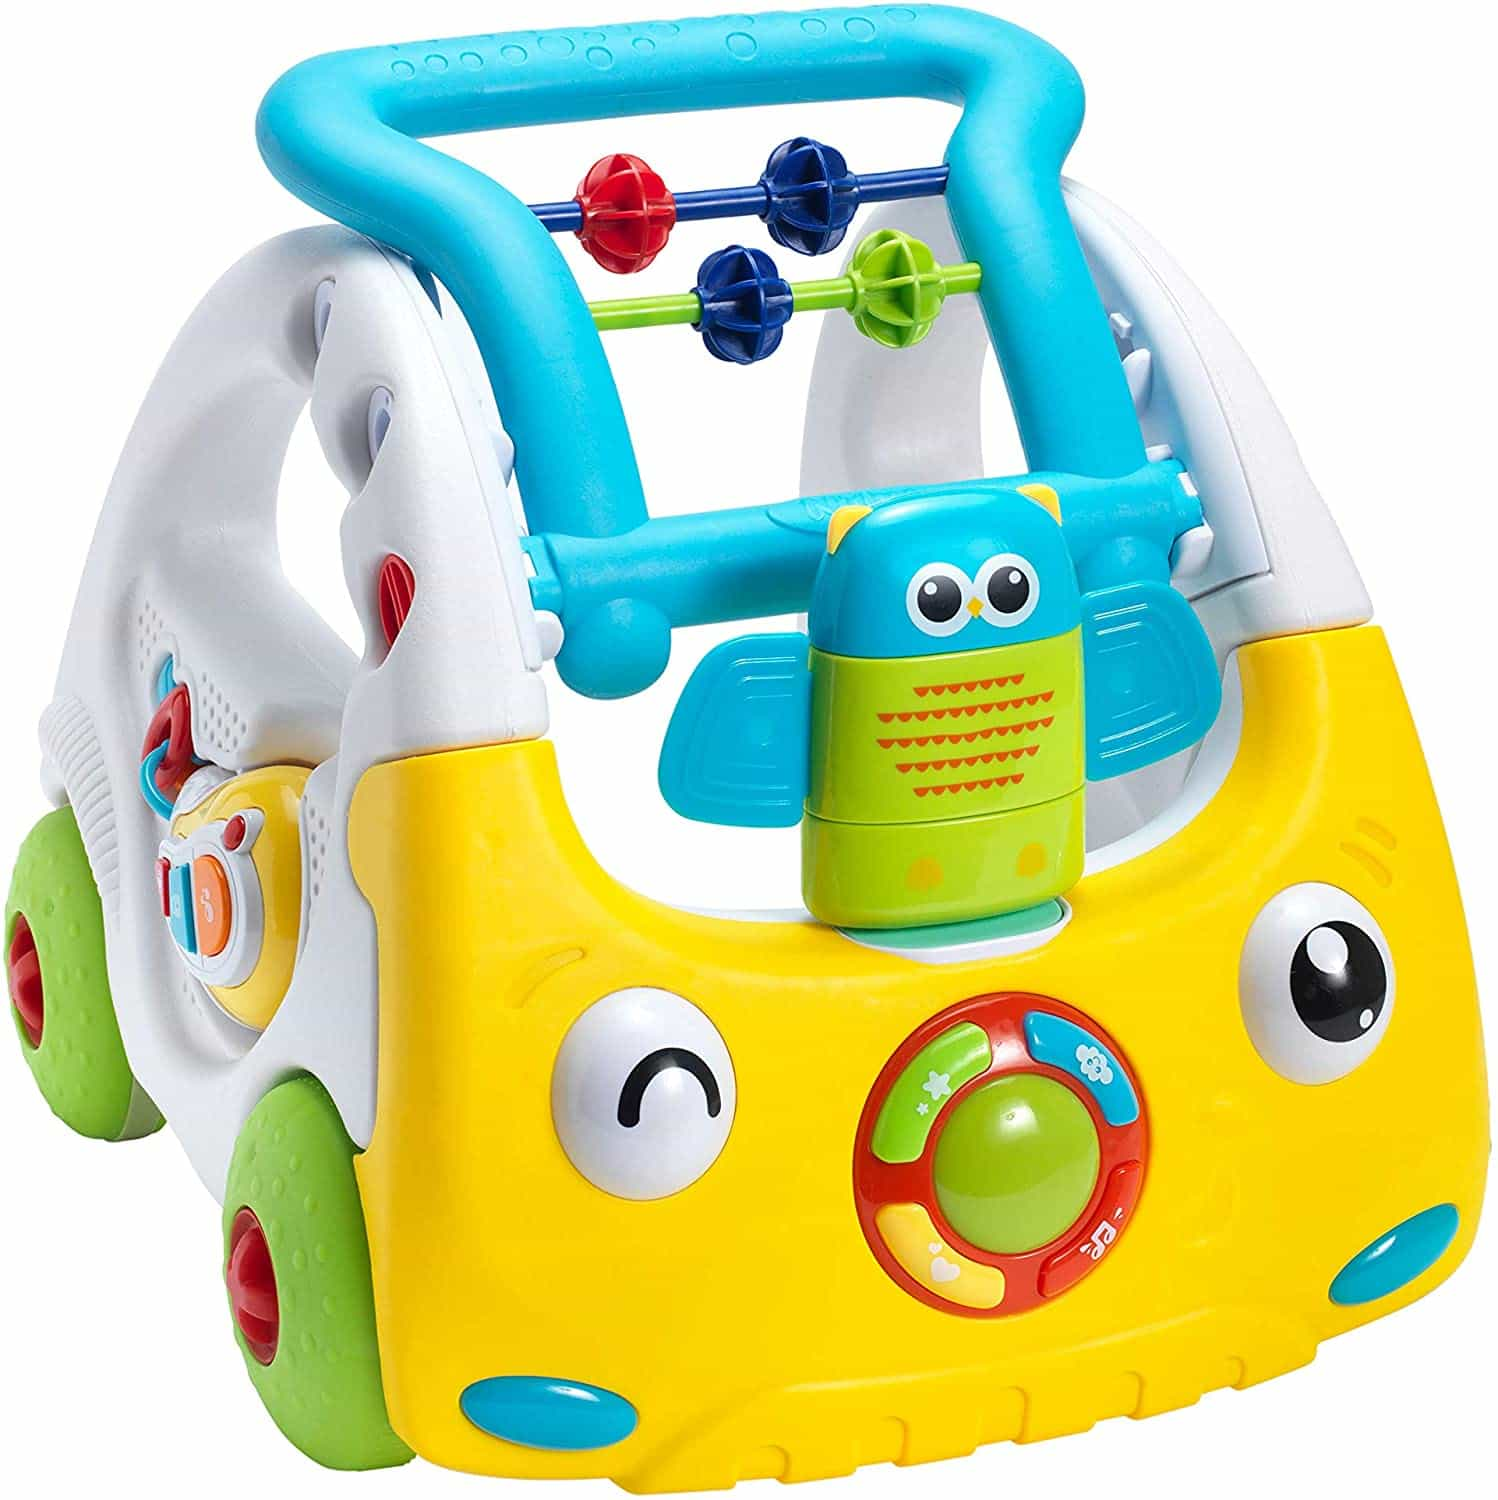 Nuby interactive baby walker with lights and sounds.